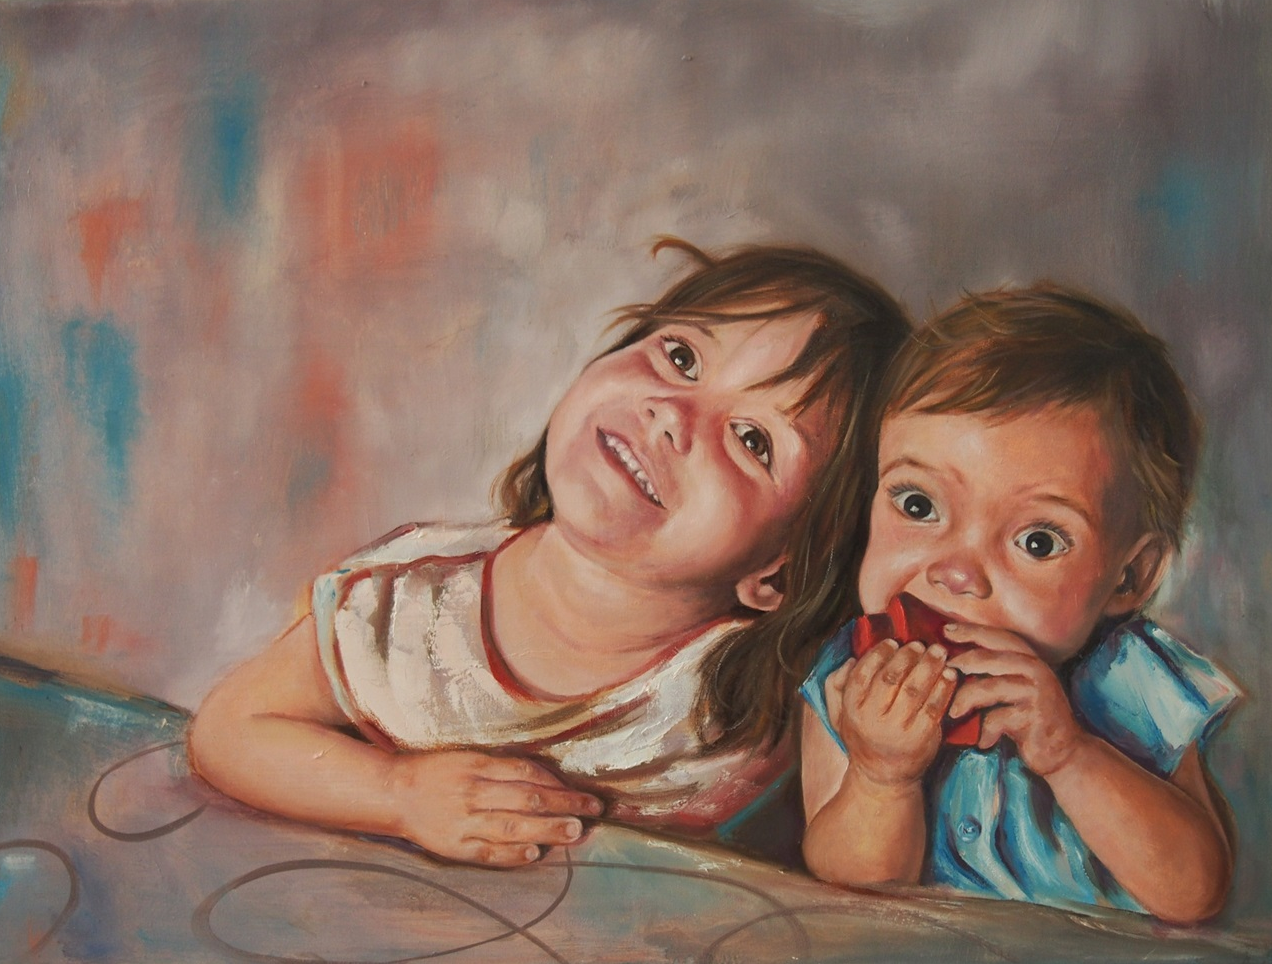 4th generation - 80x60 - Oil on canvas